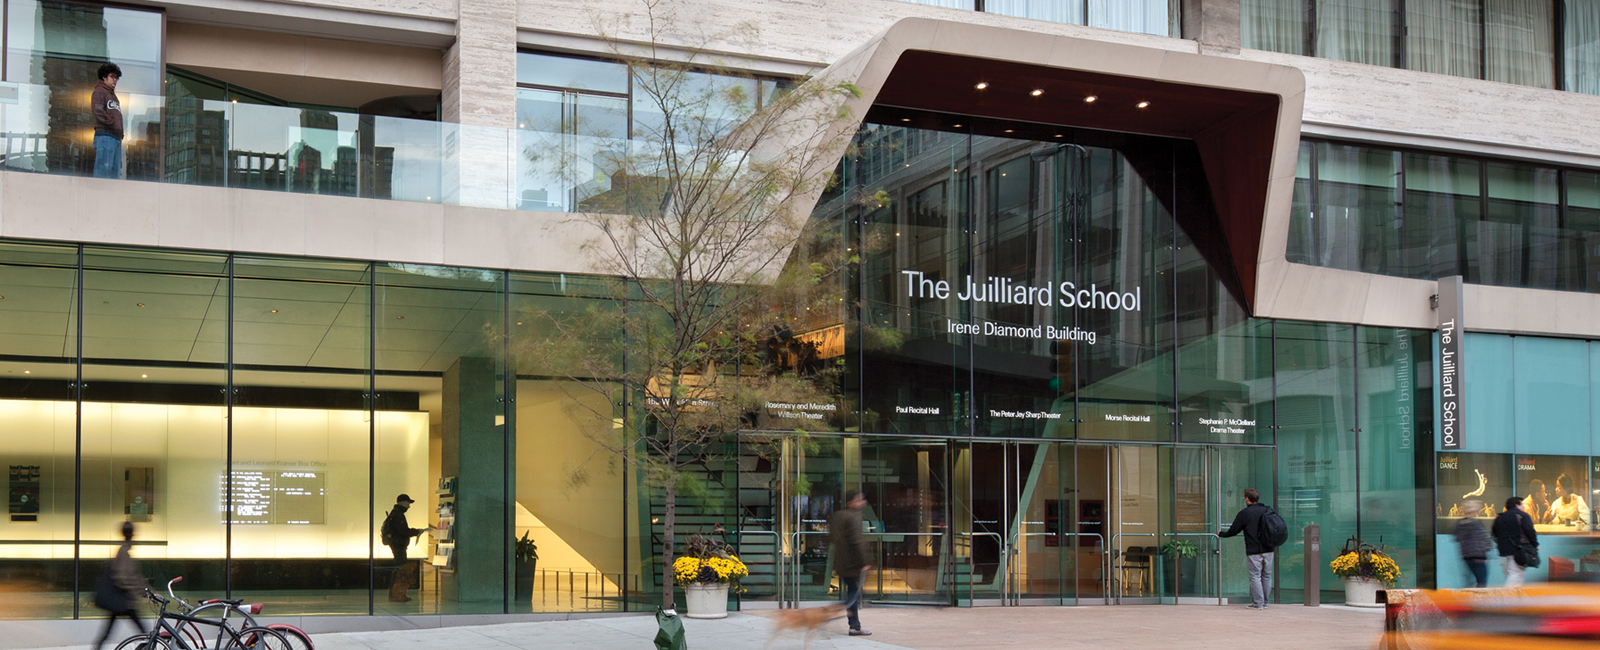 7 Things I Tell People Who Ask Me How To Get Into Juilliard